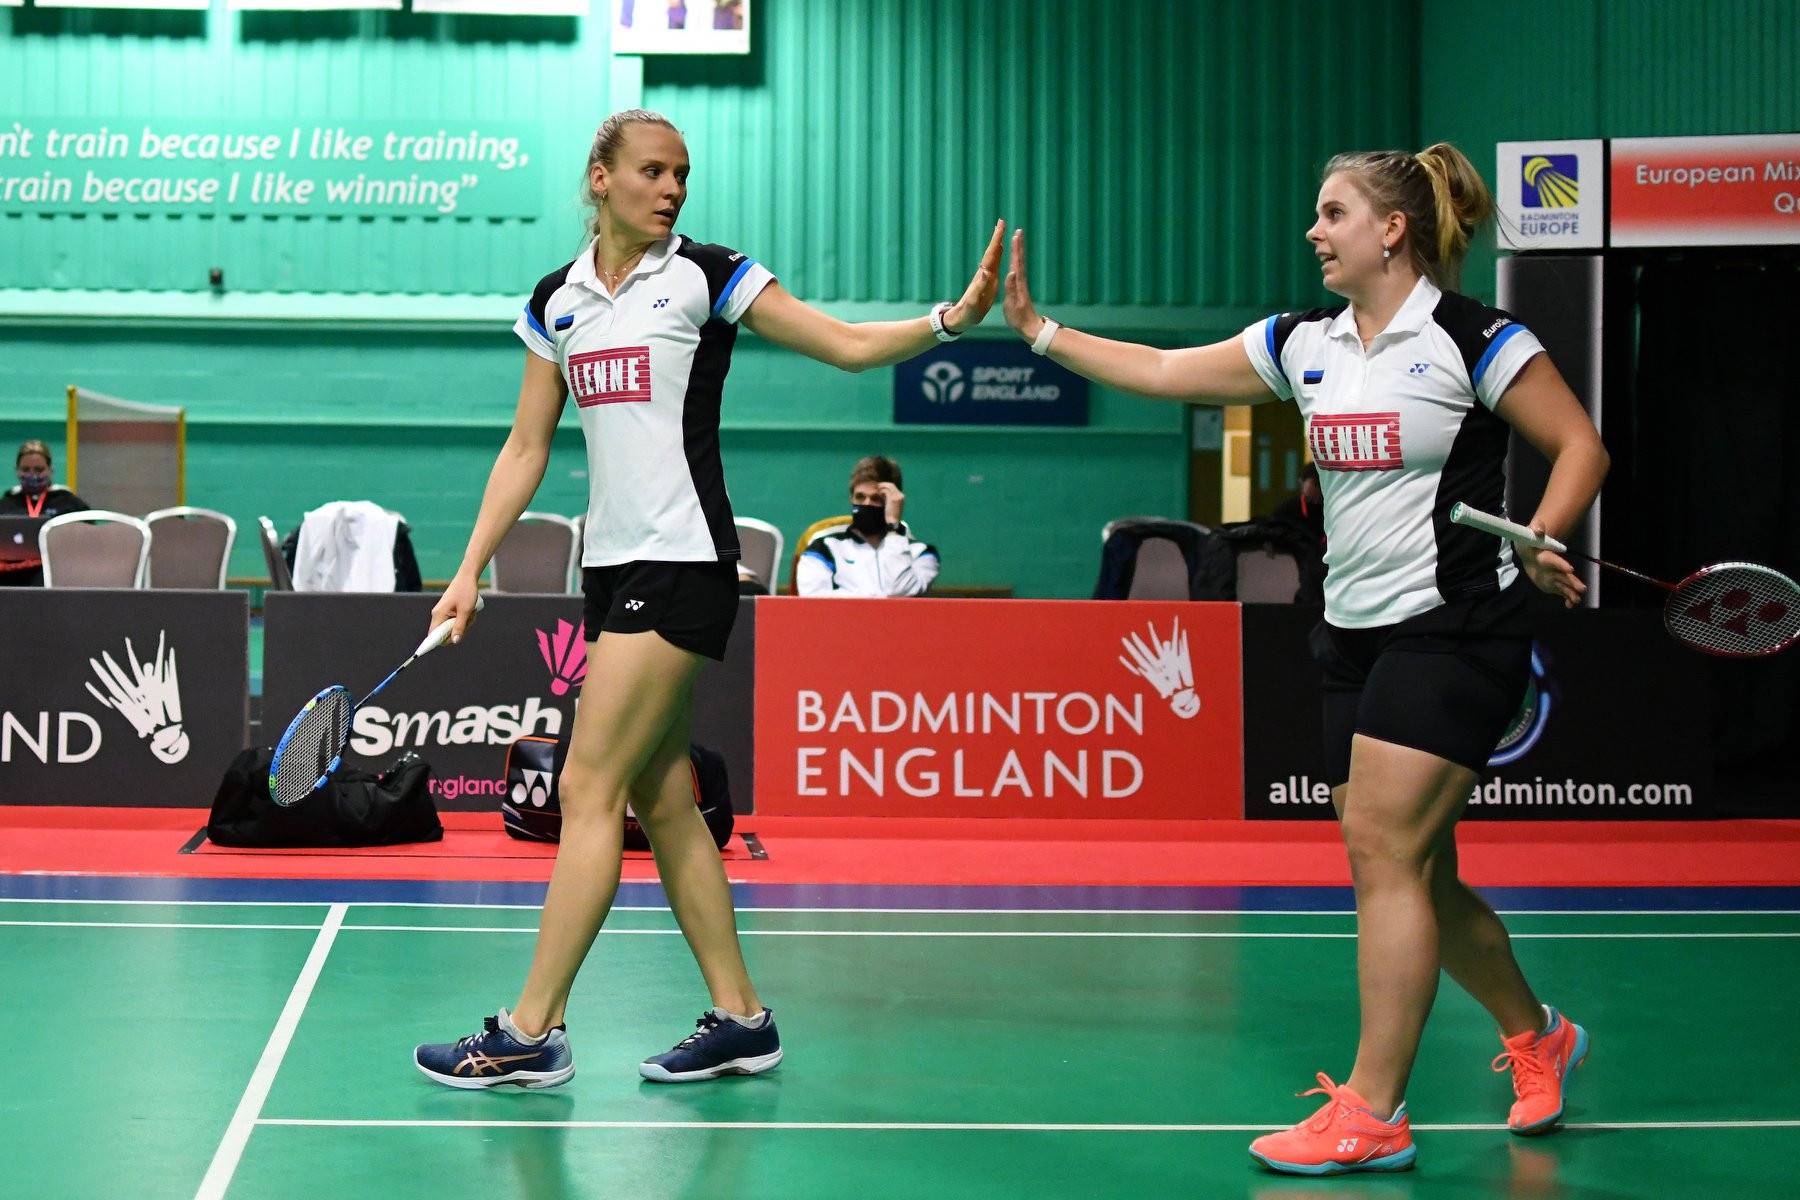 Estonia came from behind to defeat Sweden ©Facebook/Badminton Europe/Alan Spink